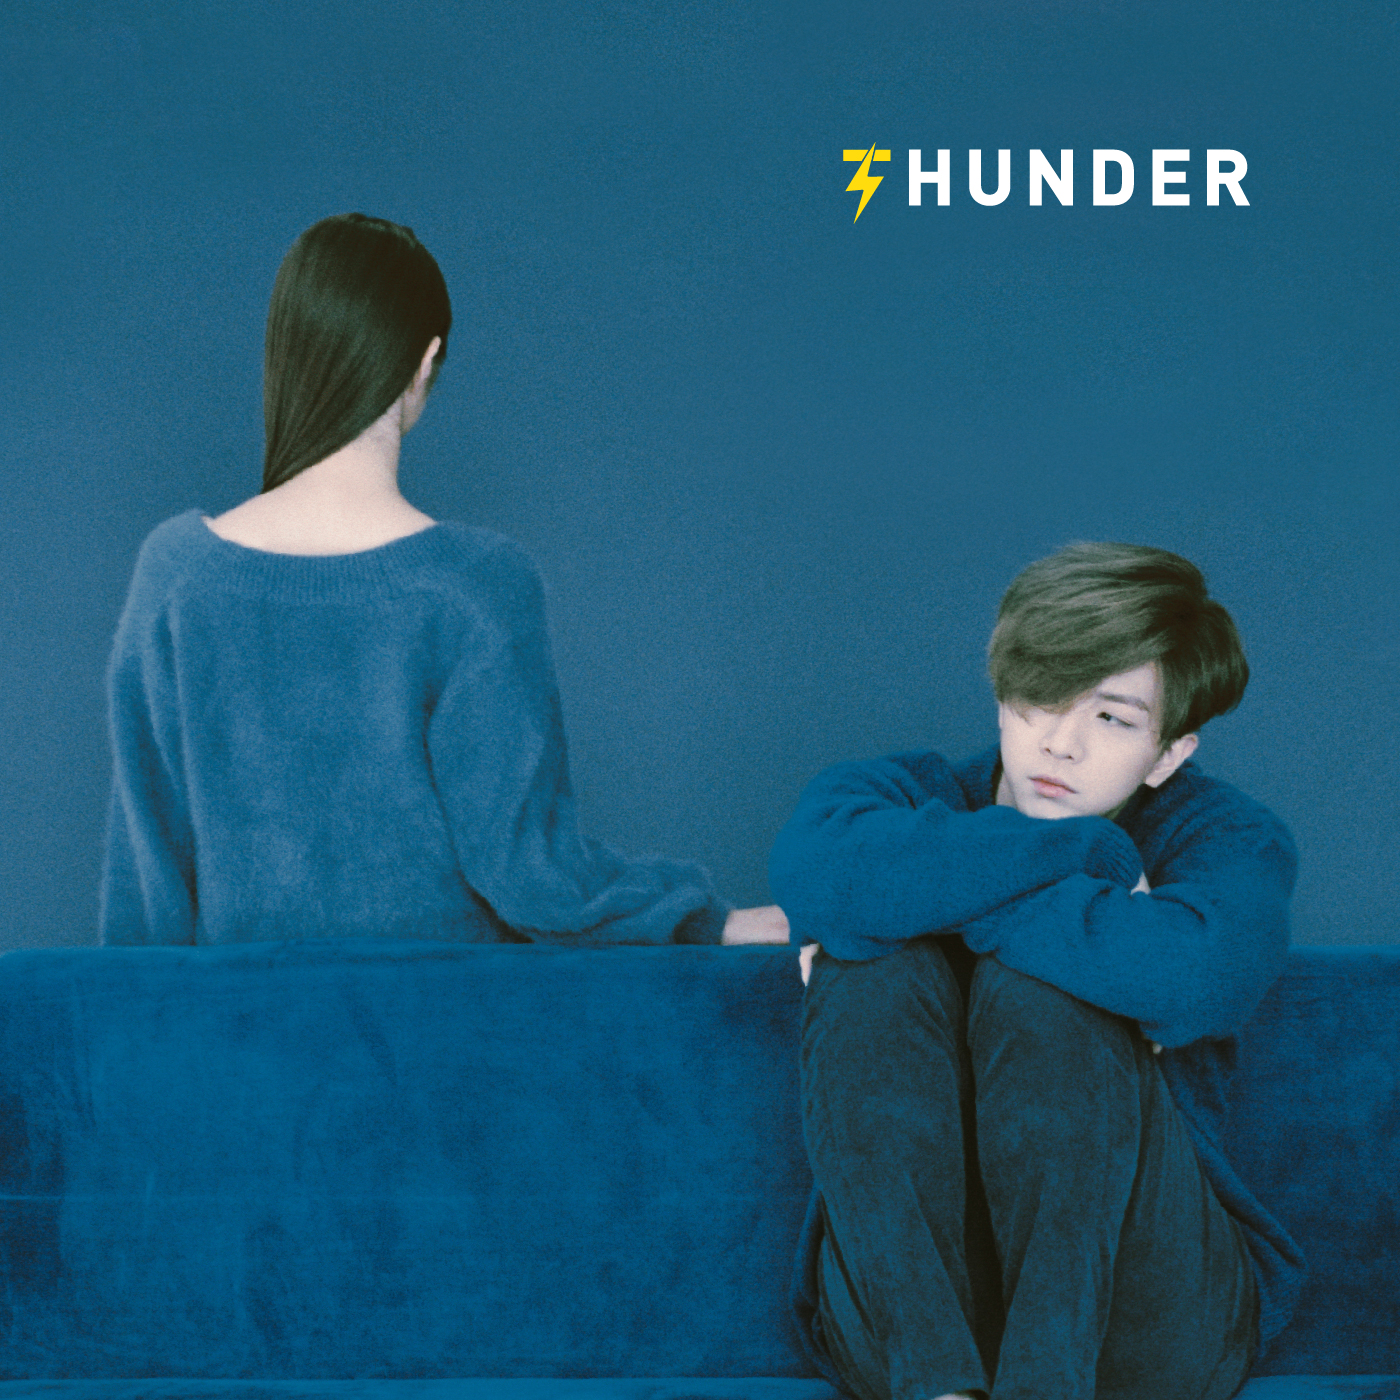 Download Lagu Thunder Terbaru